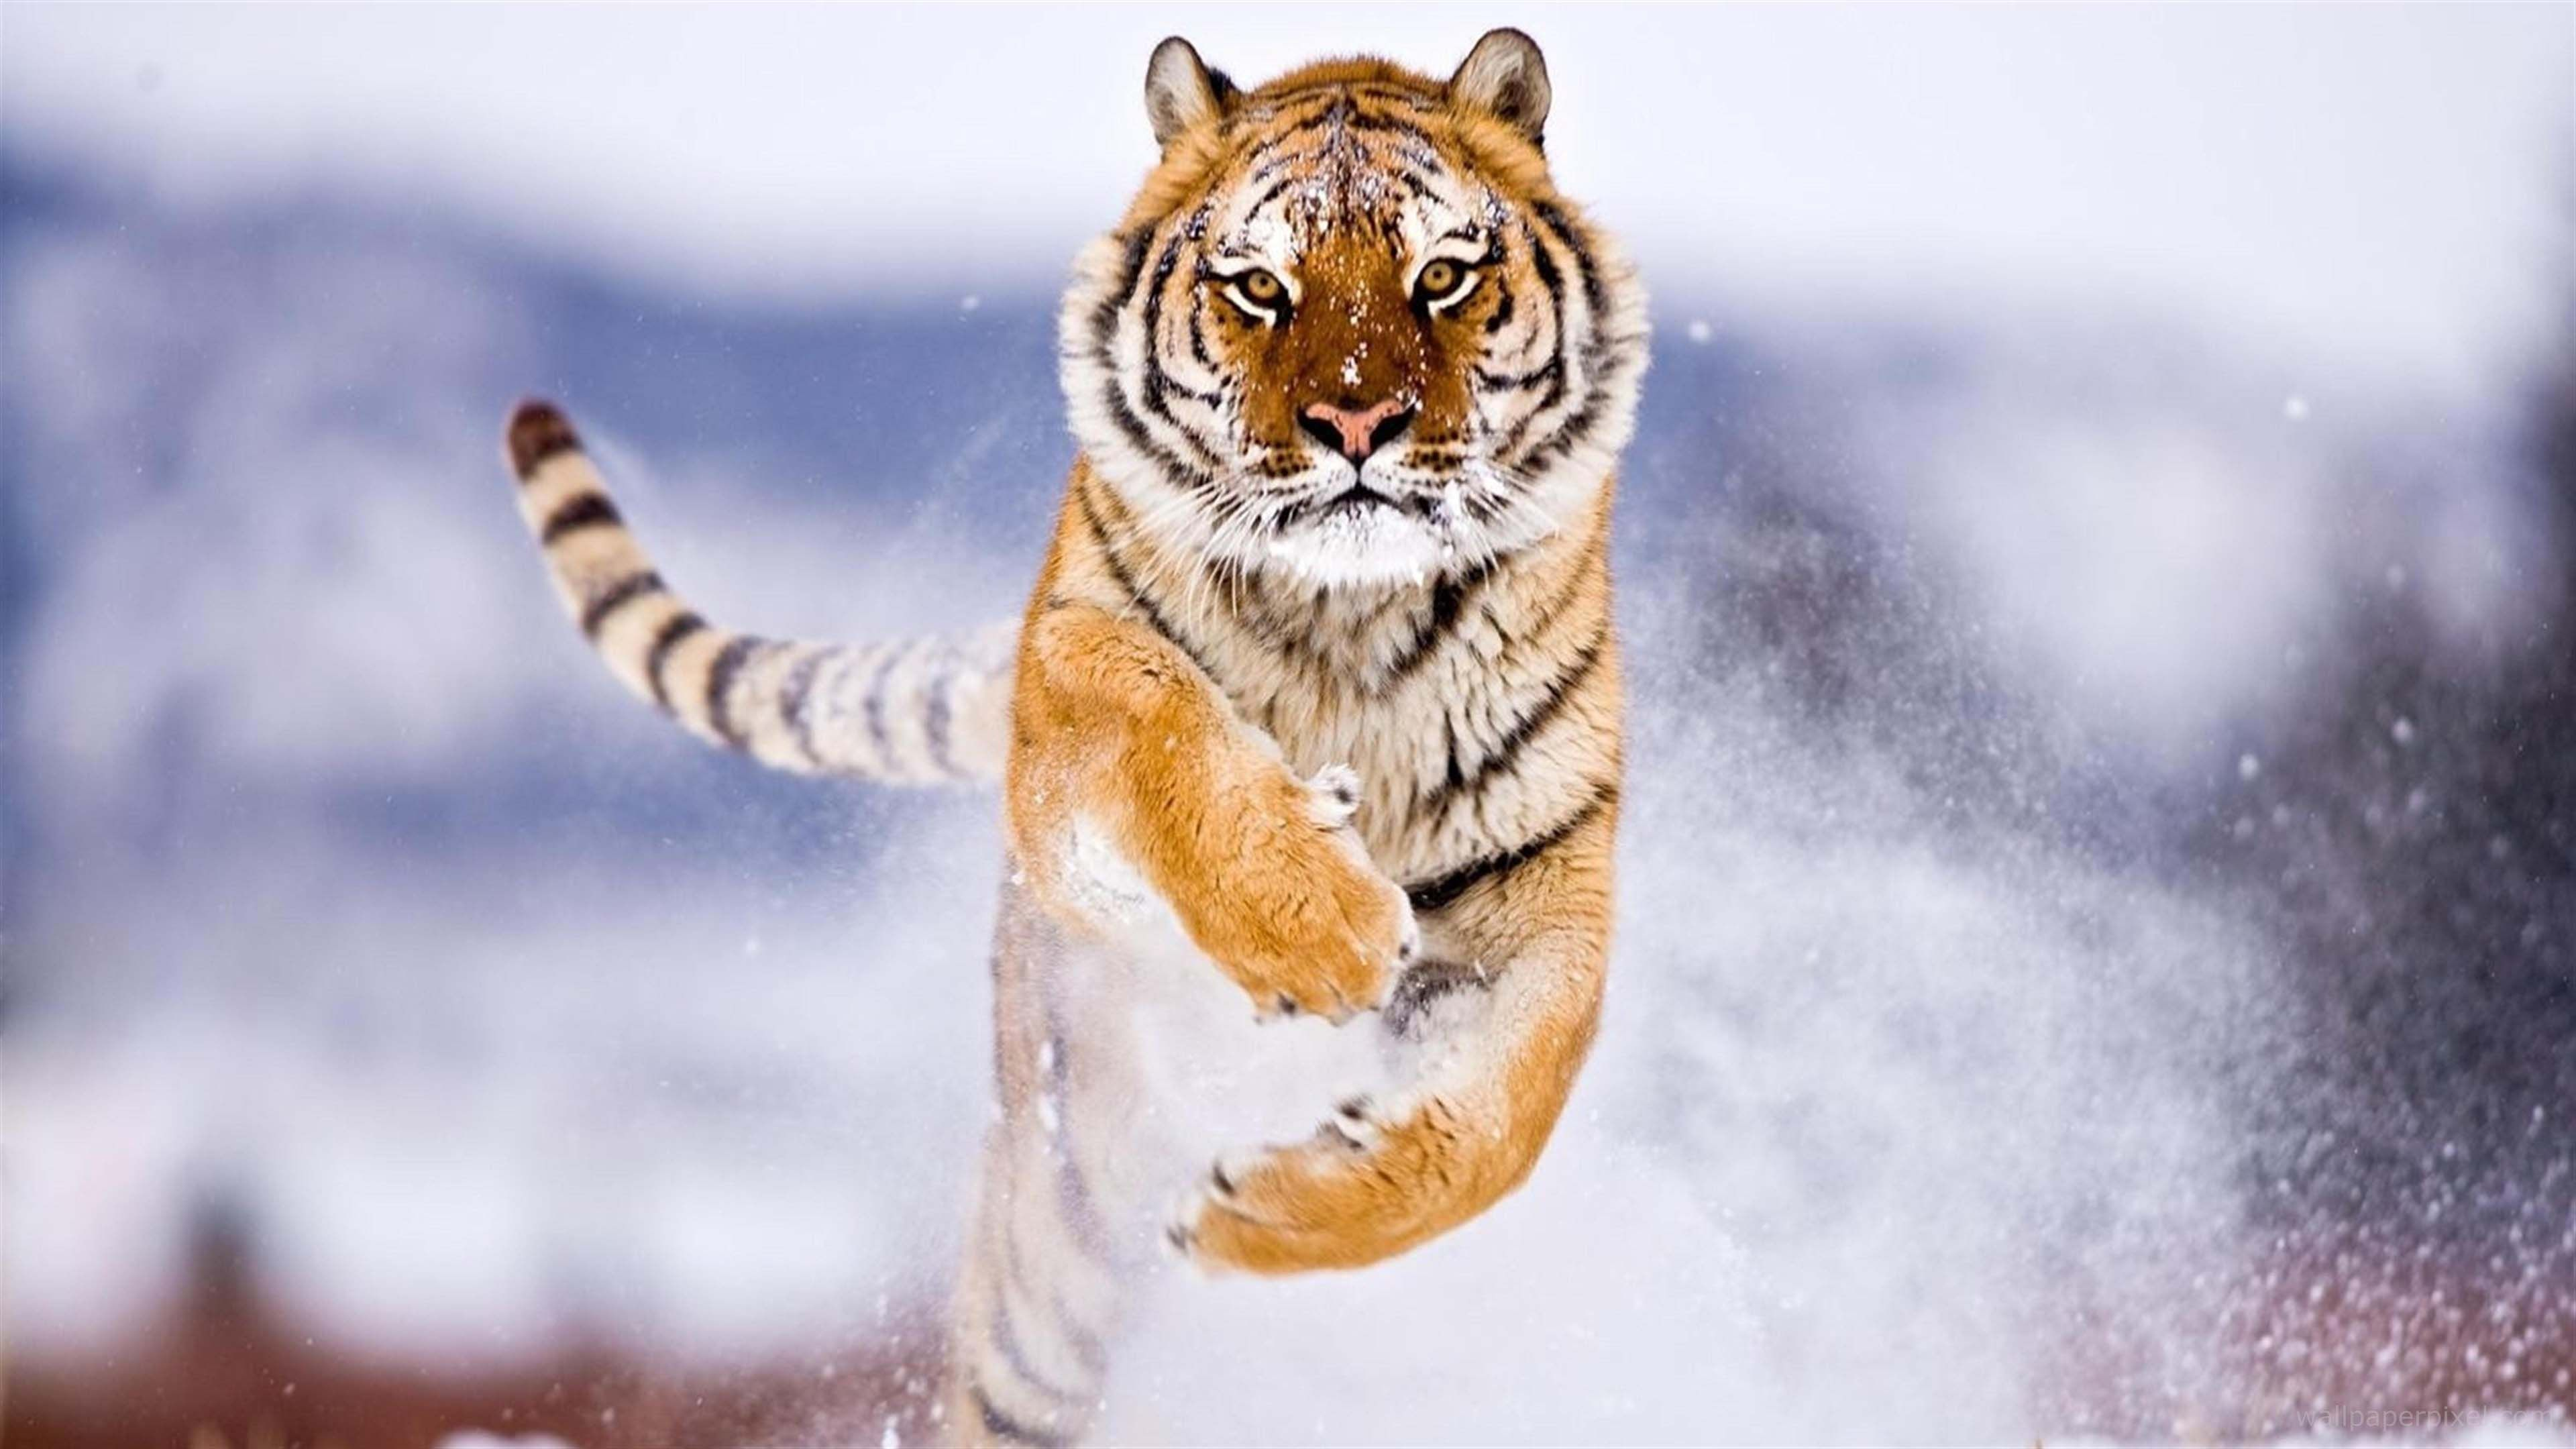 siberian tiger jumping on snow ultra hd wallpapers | animals